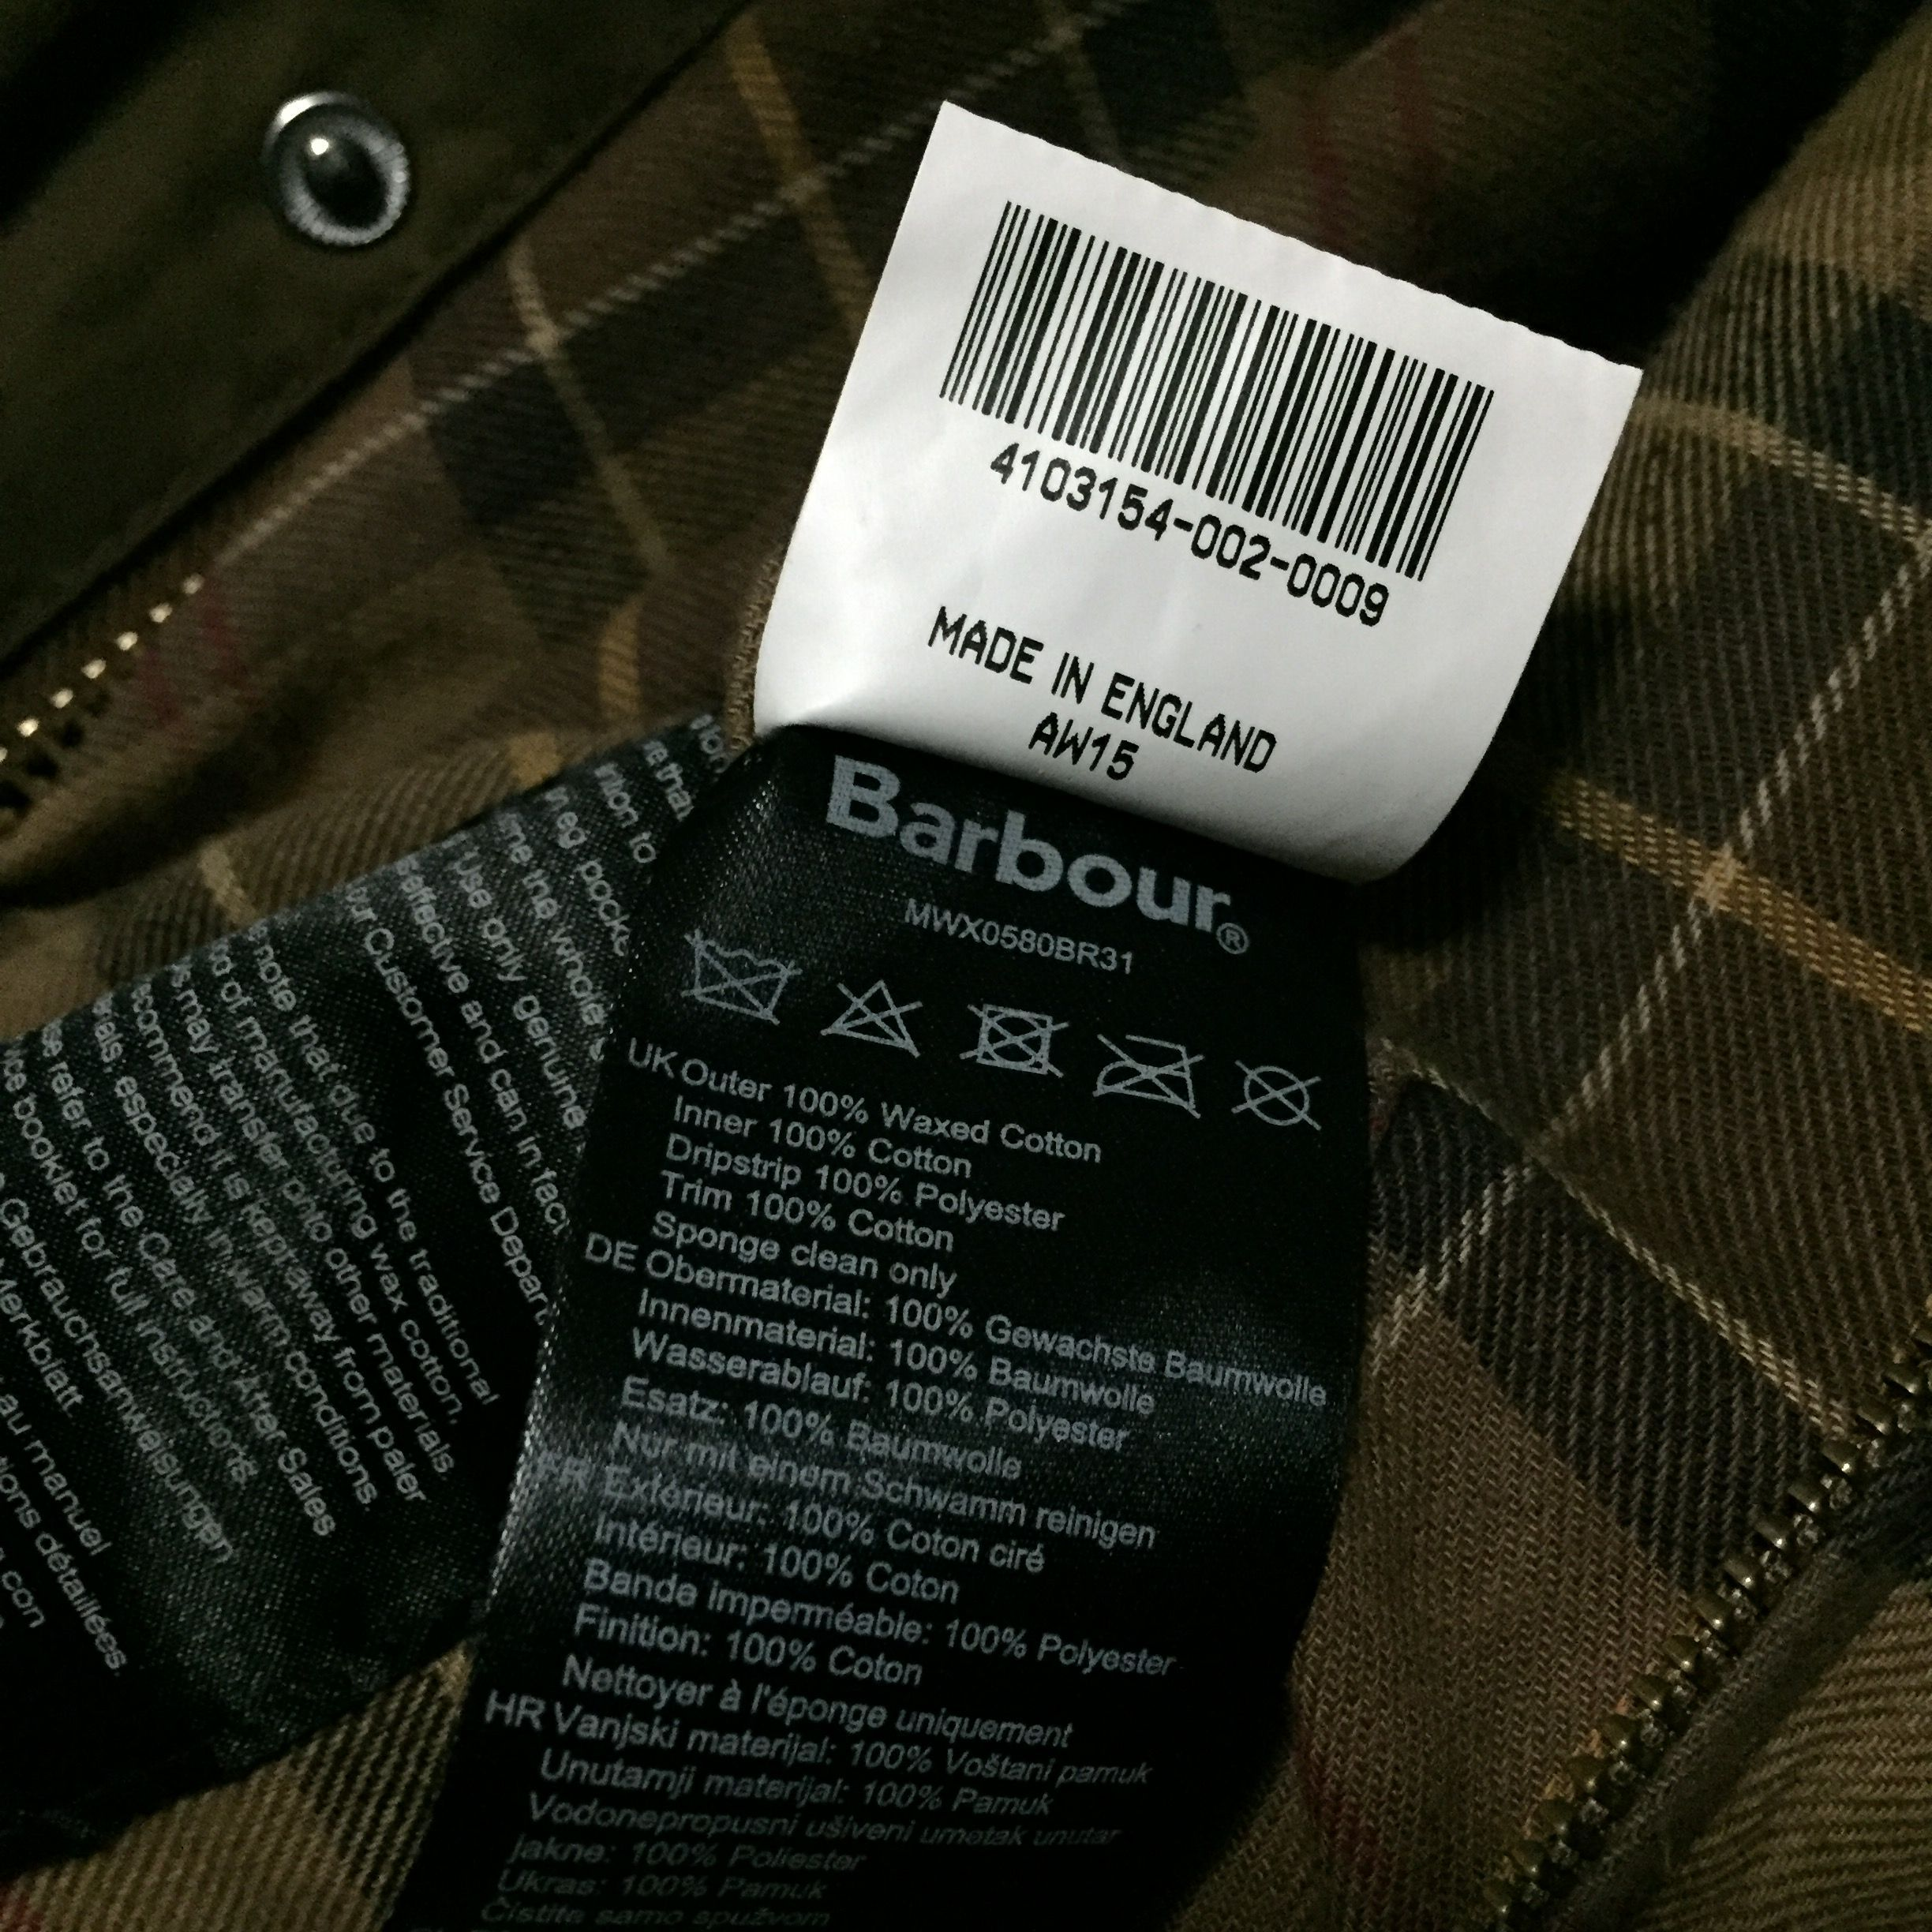 badeggcat's photos in Offical Barbour Thread